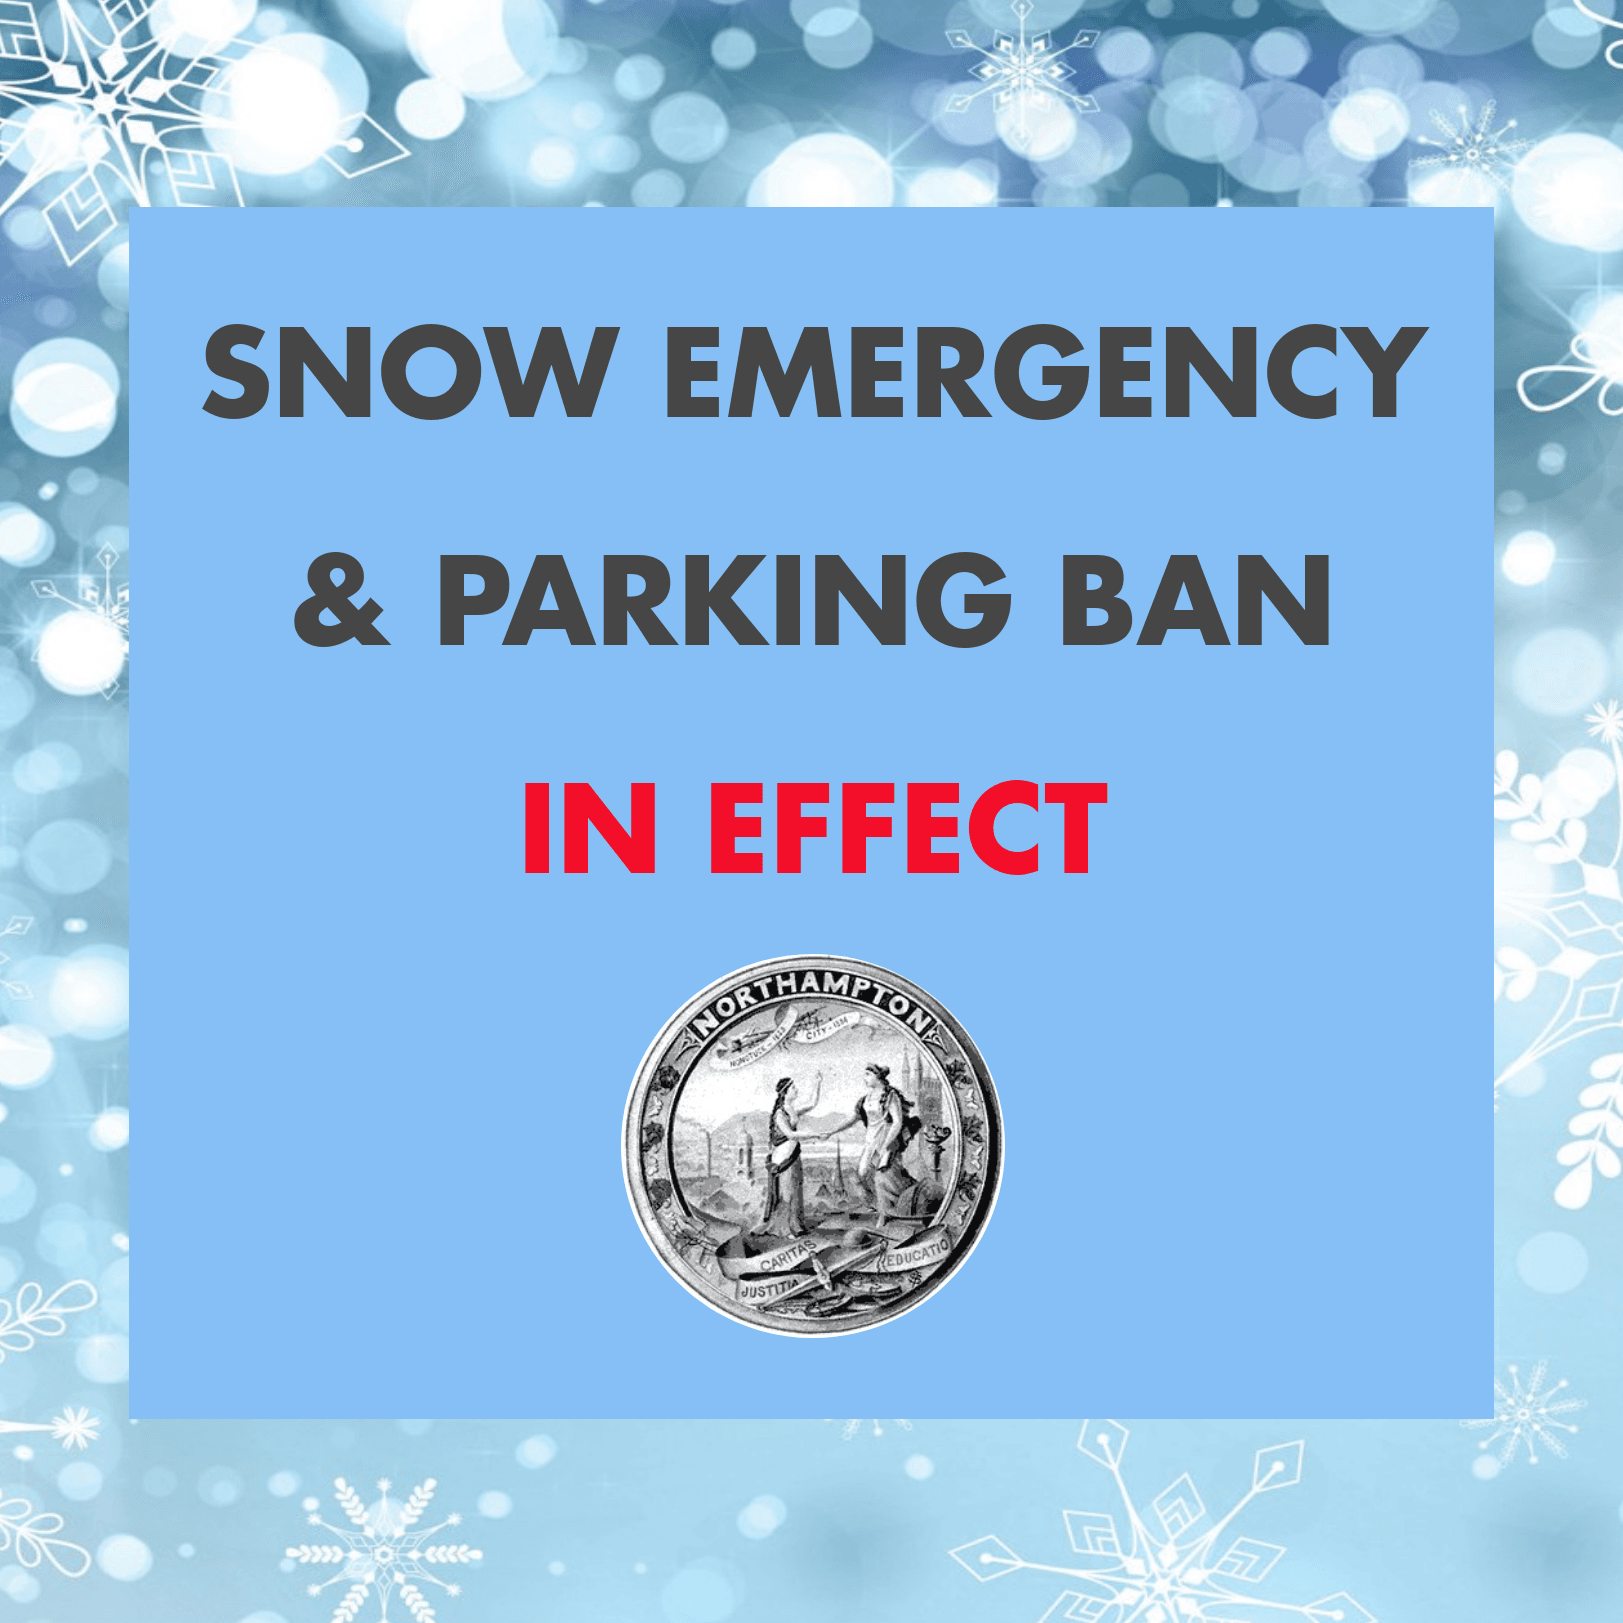 Snow Emergency & Parking Ban in Effect